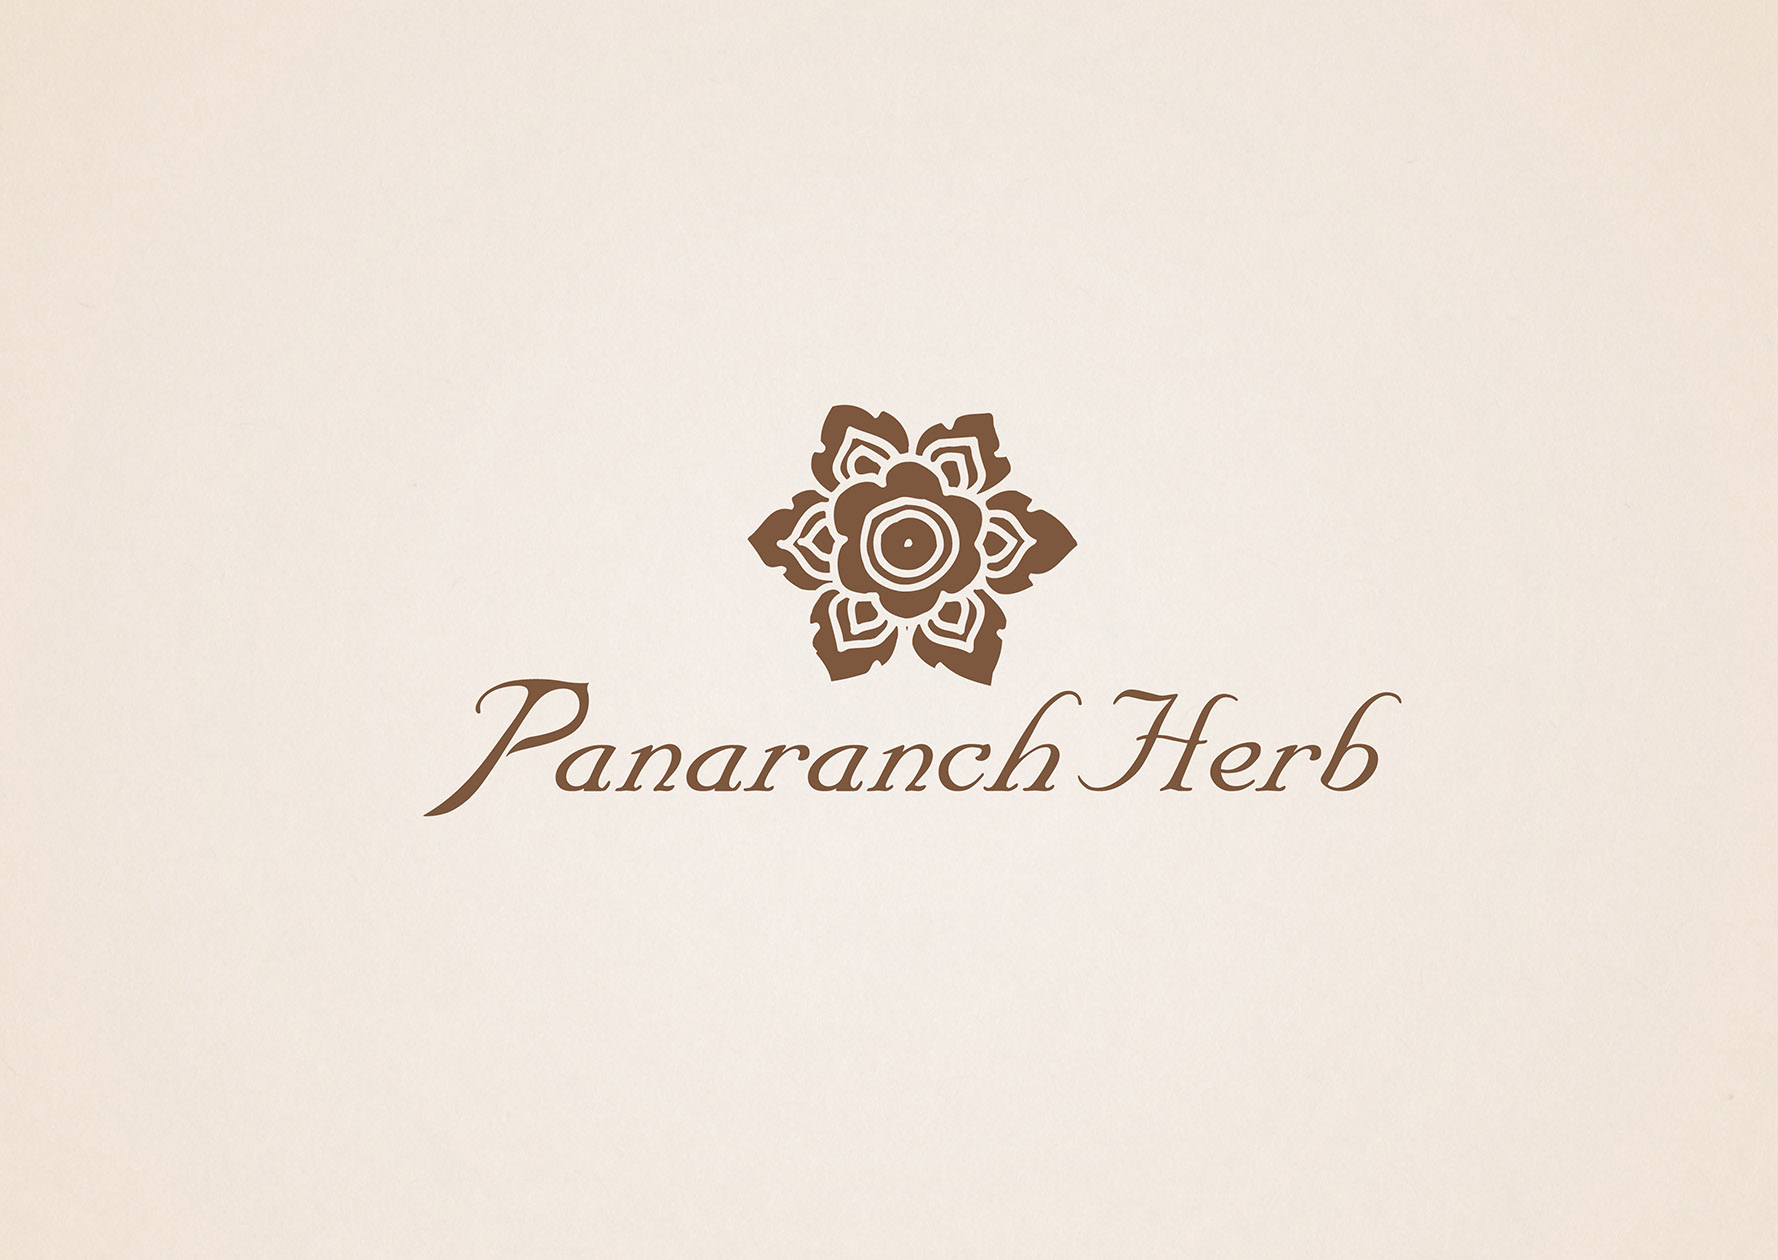 Panaranch logo design